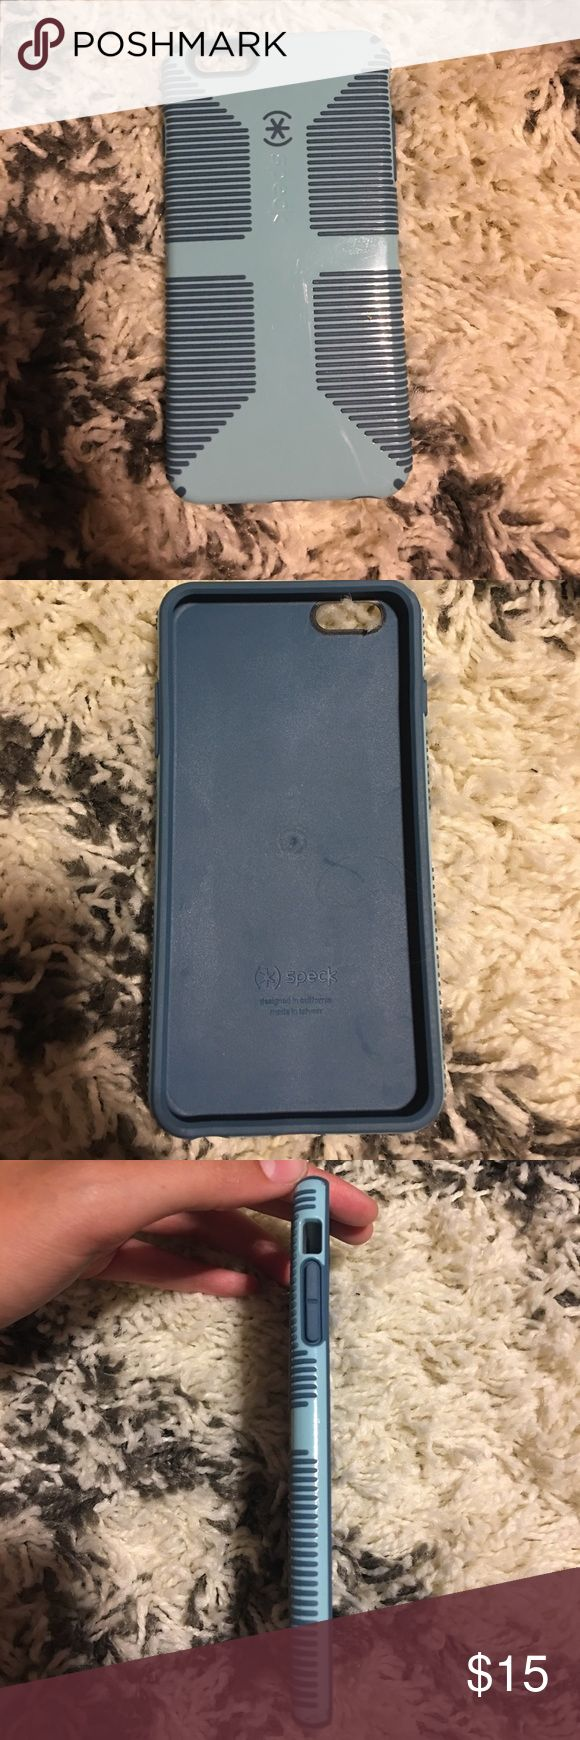 Speck IPhone 6/6s PLUS case Protective speck case. No signs of use!!! Only was gently used a couple times. It will protect your phone from drops & falls!!!! Speck Accessories Phone Cases